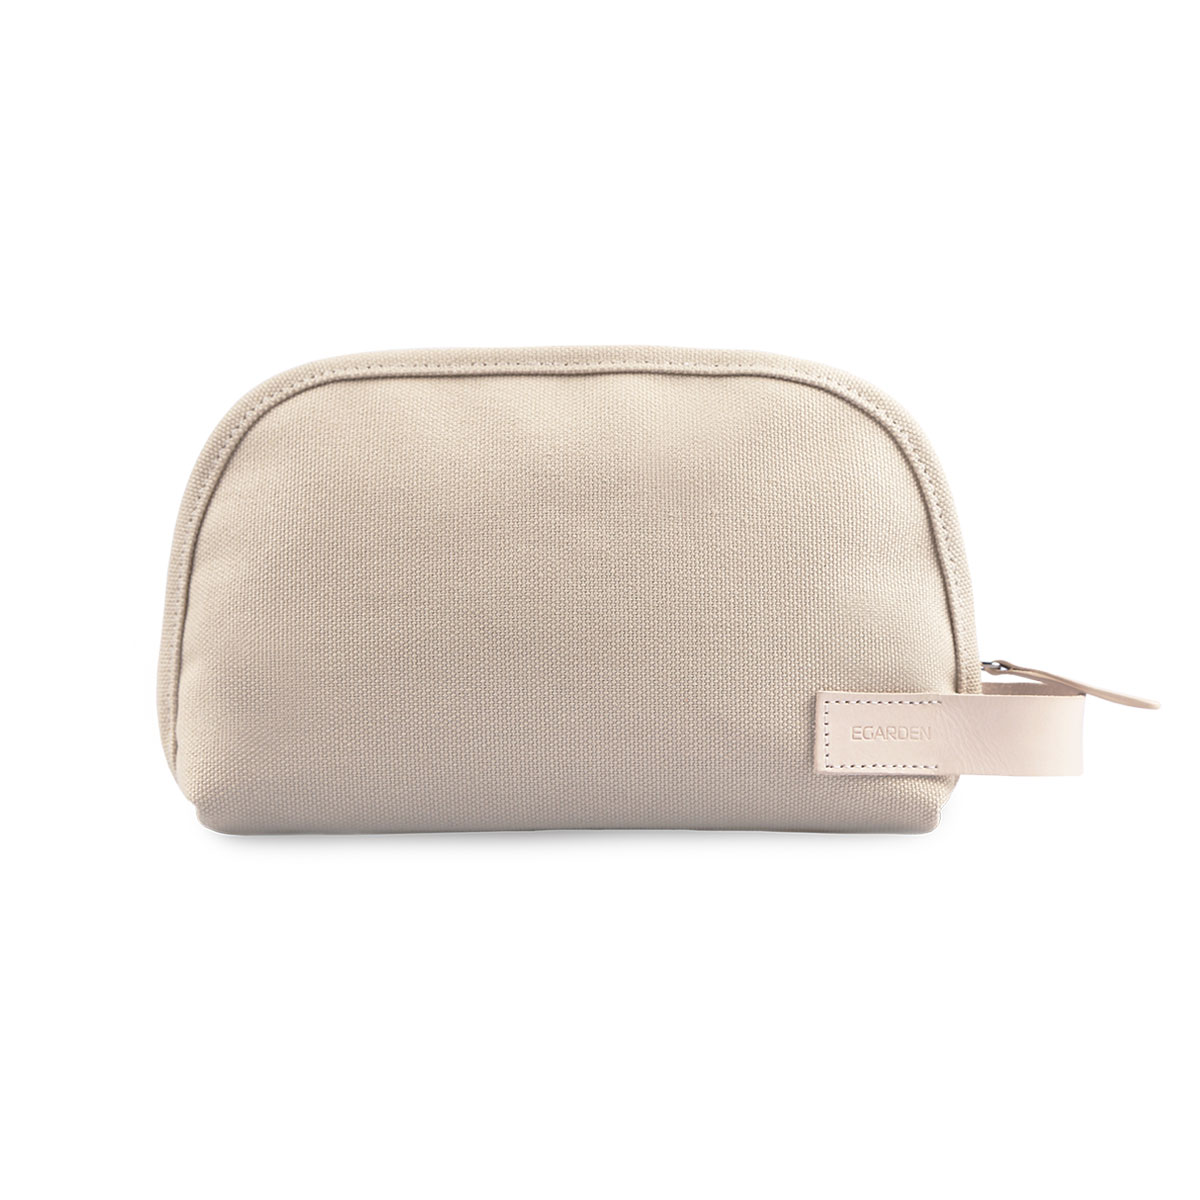 iT Pouch Beige(캔버스)